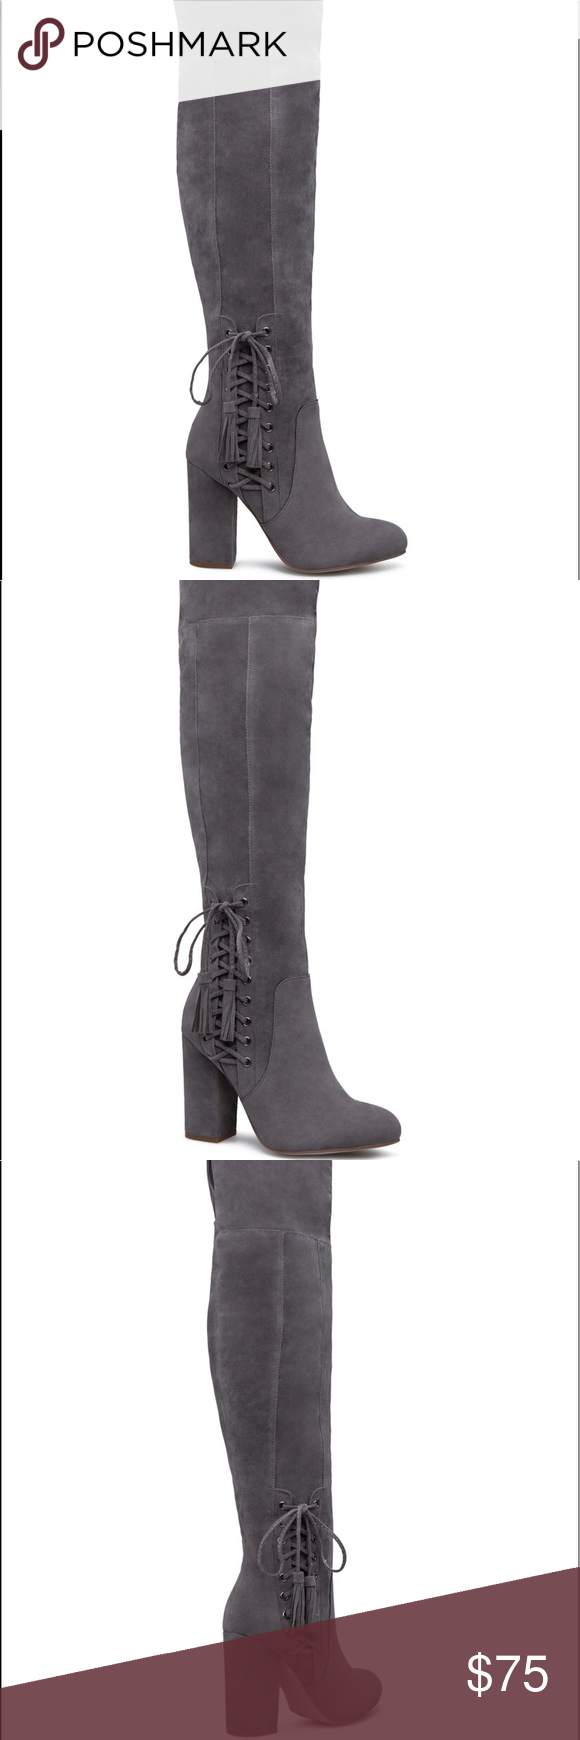 4123b908c5e HEDDA CORSET HEELED BOOT MATERIAL  Faux-suede. Imported. COLOR  GREY SIZING